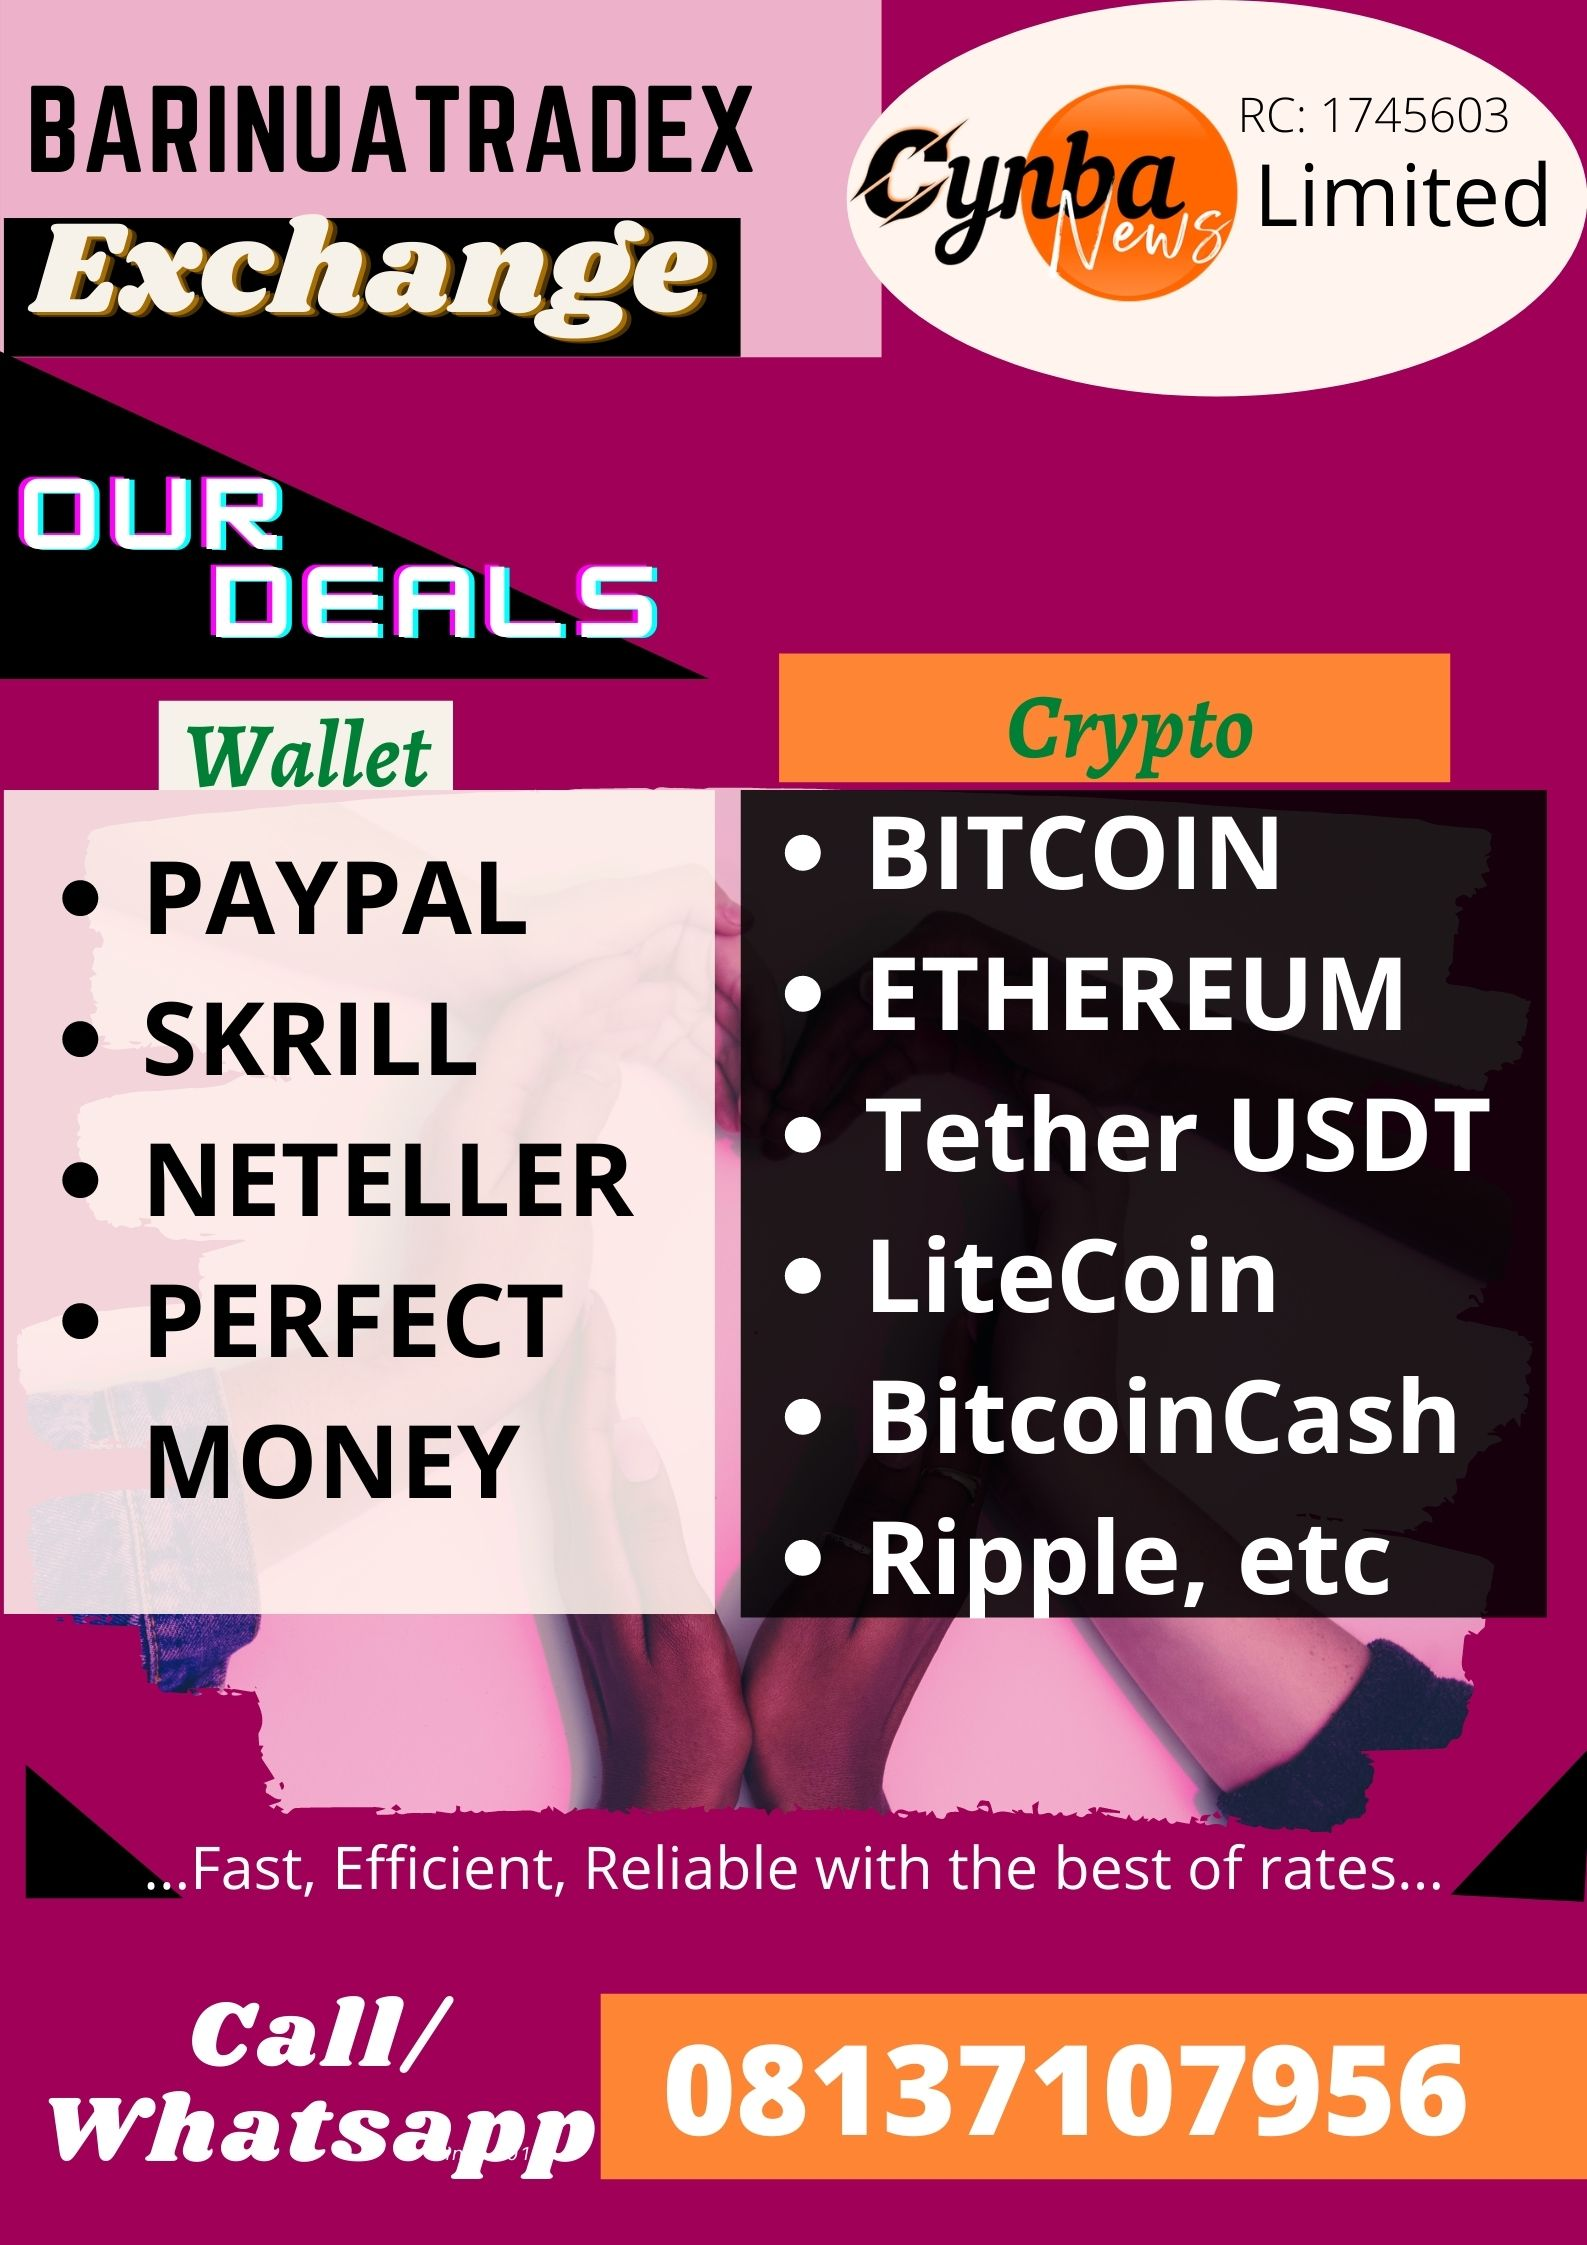 skrill, neteller, btc, paypal and perfect money agent in Port Harcourt Nigeria